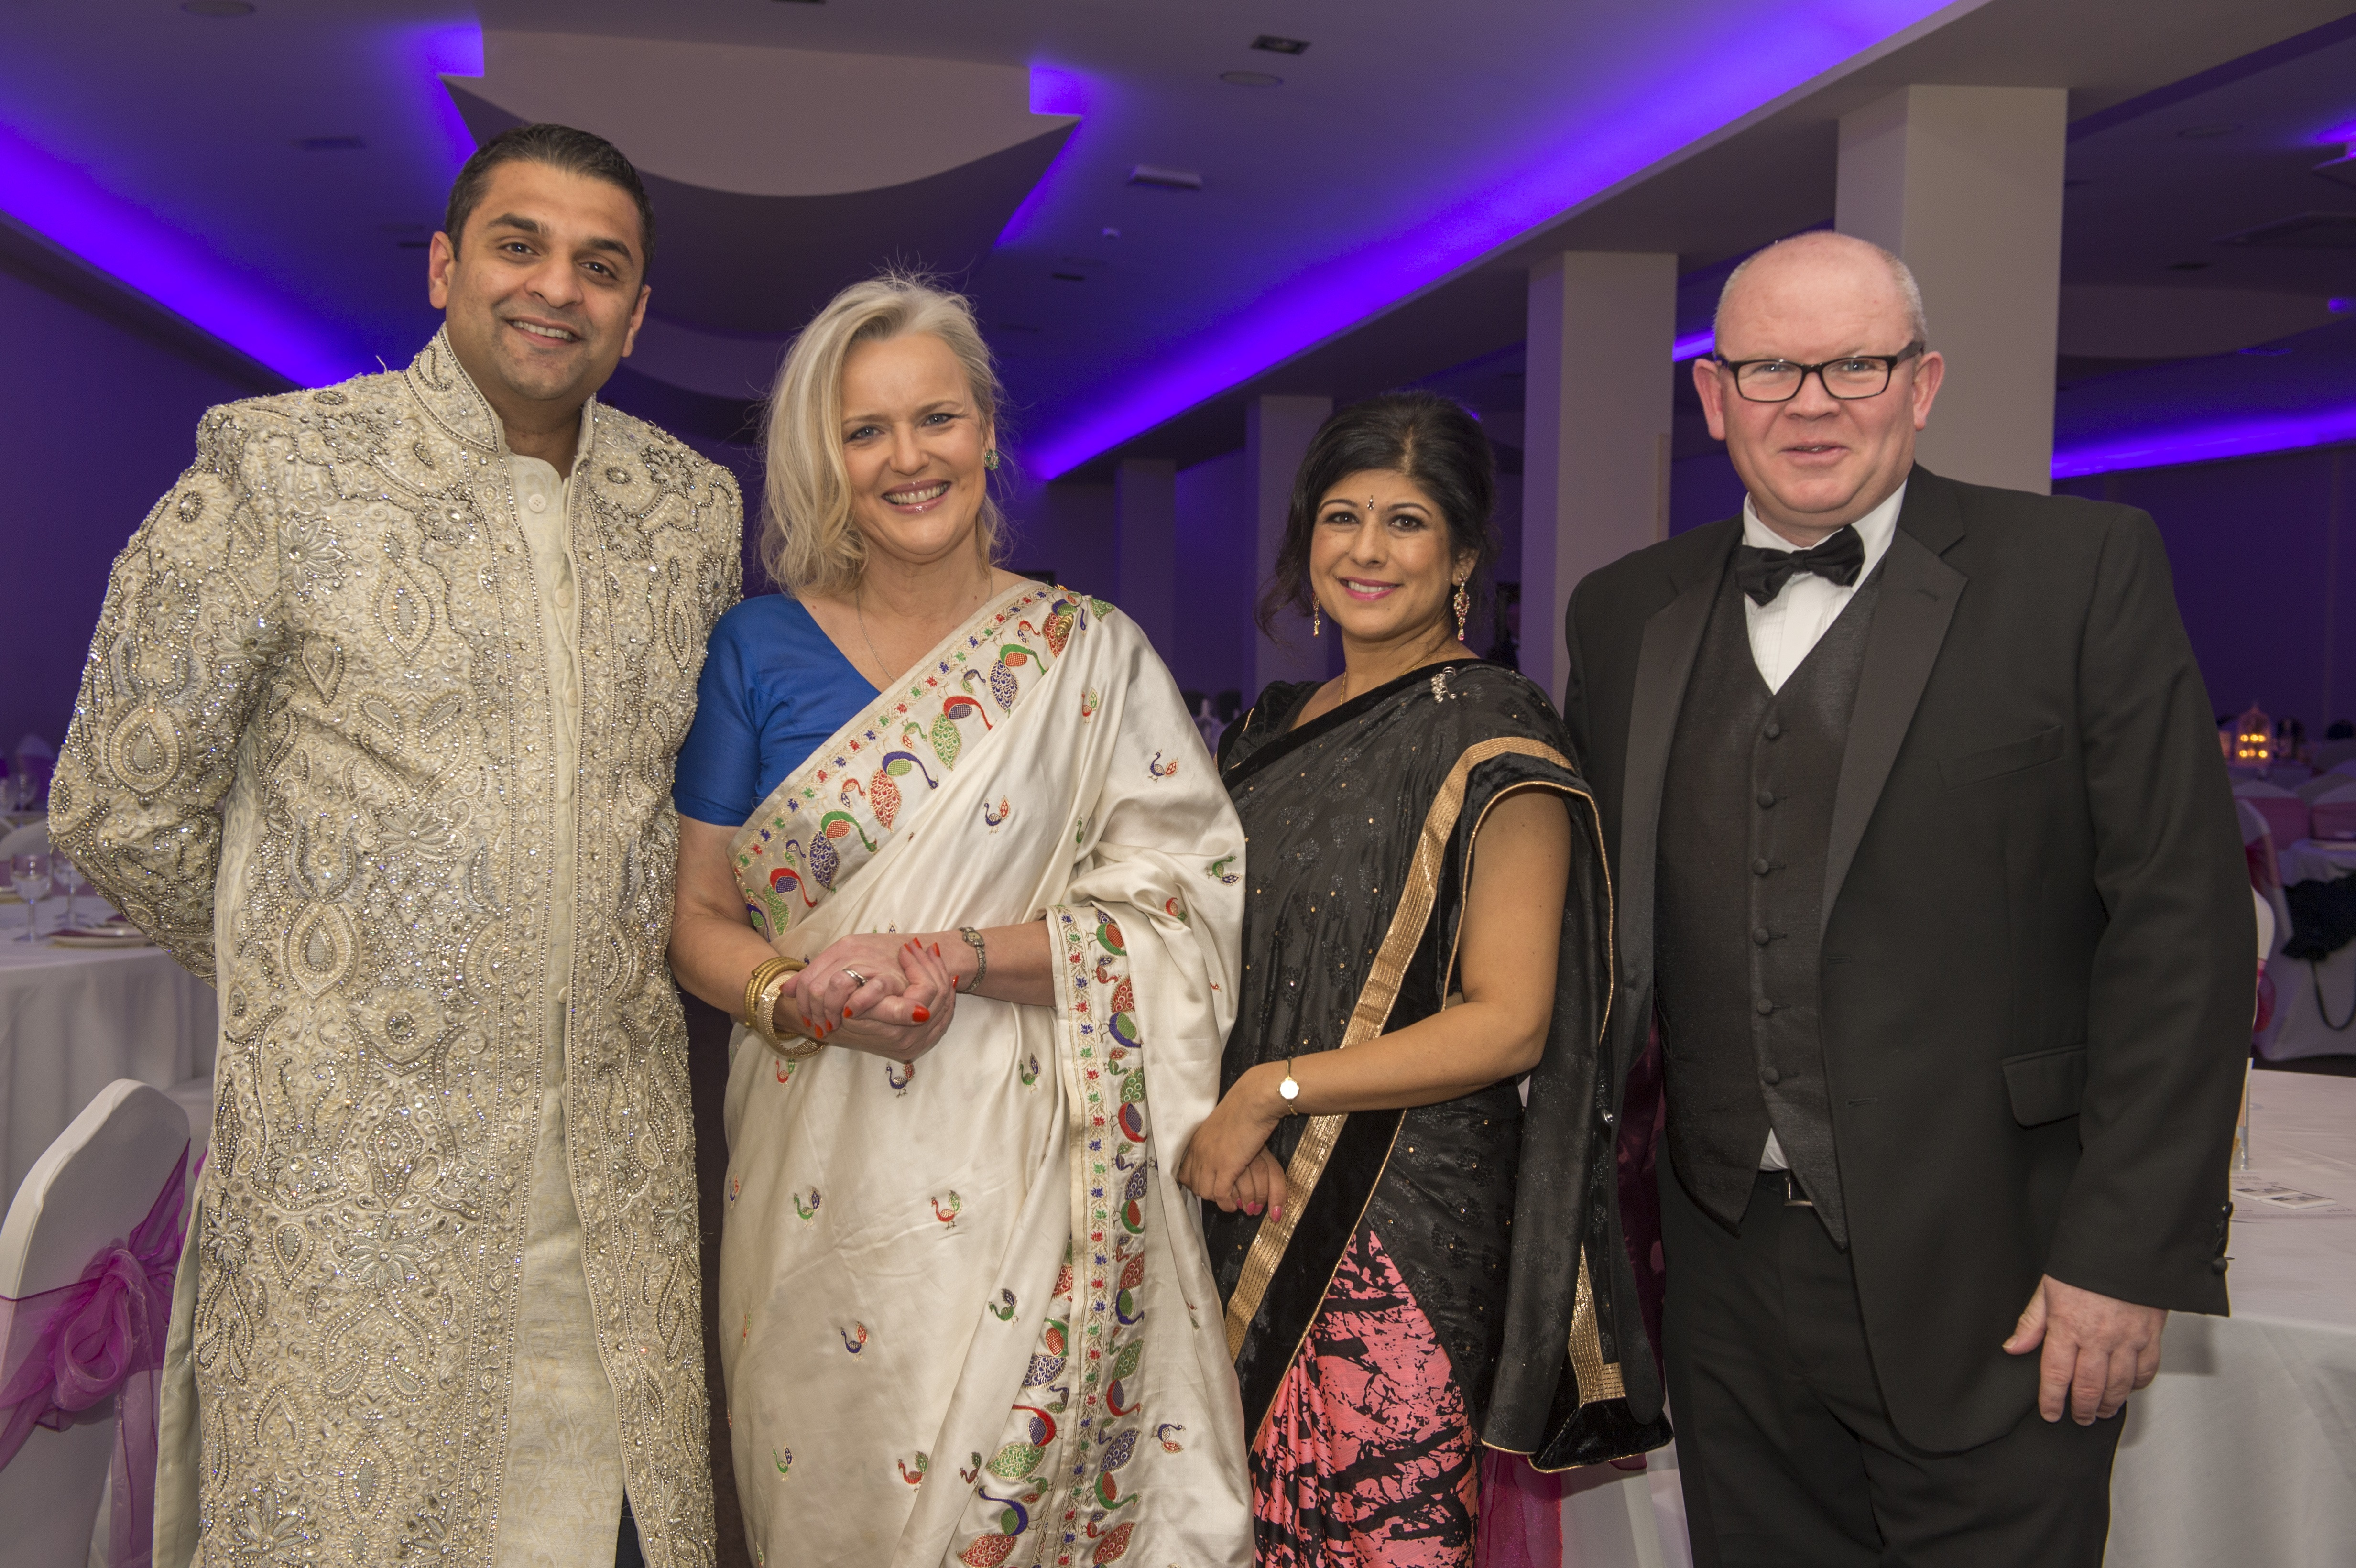 Bhayani Law Bollywood Ball held at Arooj, Attercliffe Road in Sheffield Saturday 7th November 2015 Lawyer Jay Bhayani, compere Billal Jamil,Public Speaking Academy, Kevin Elliott, Yorkshire Bank South Yorkshire Head of Business & Private Banking, Jo Davison,